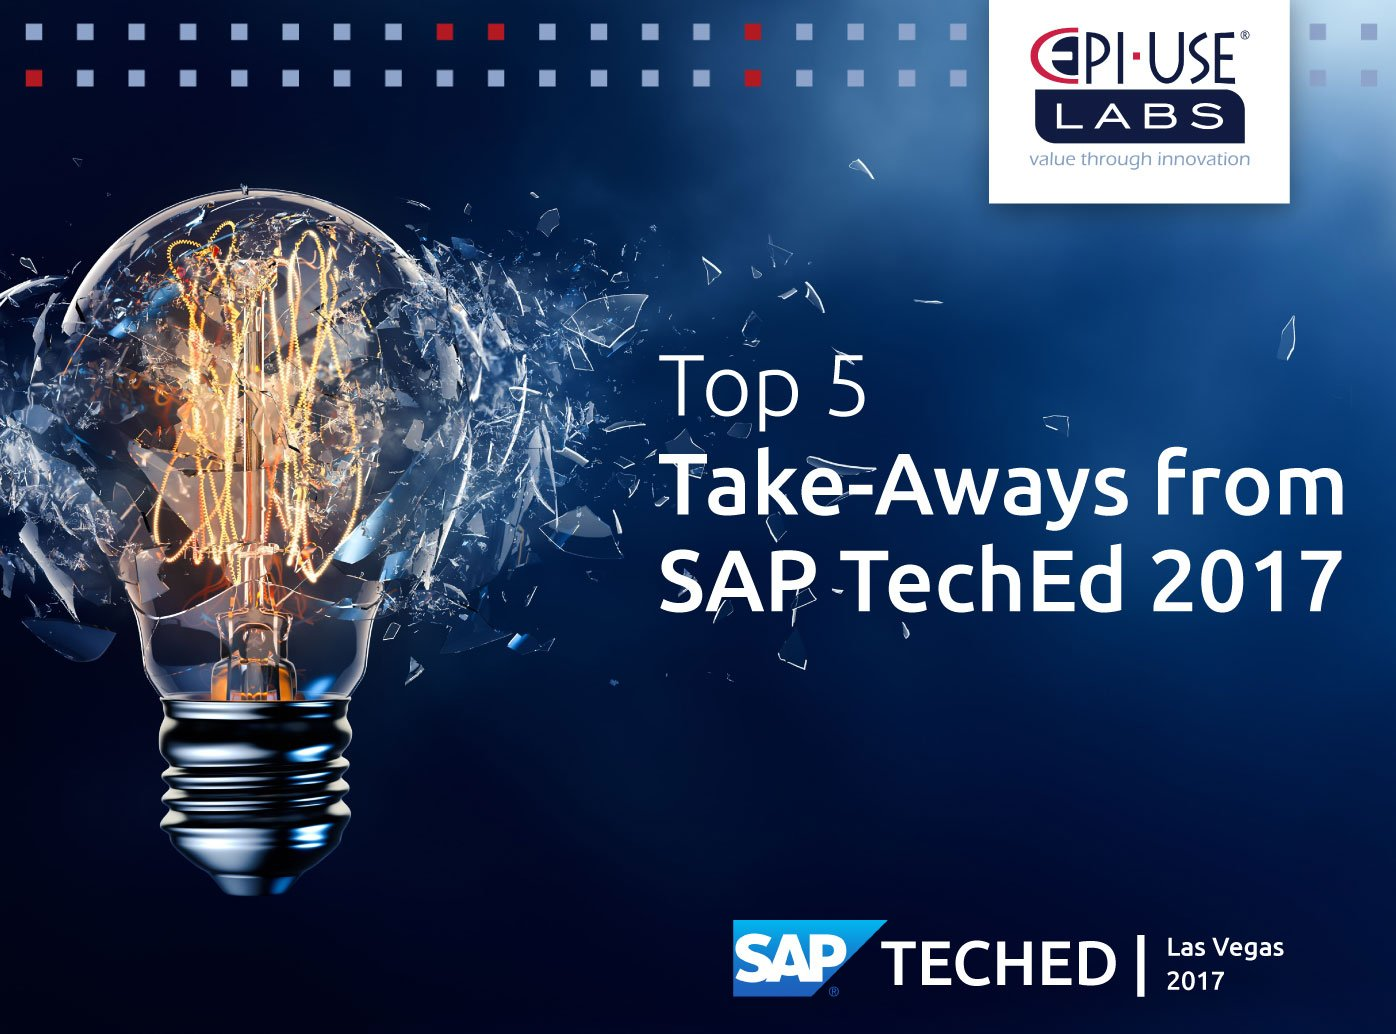 Top 5 take-aways from SAP TechEd 2017